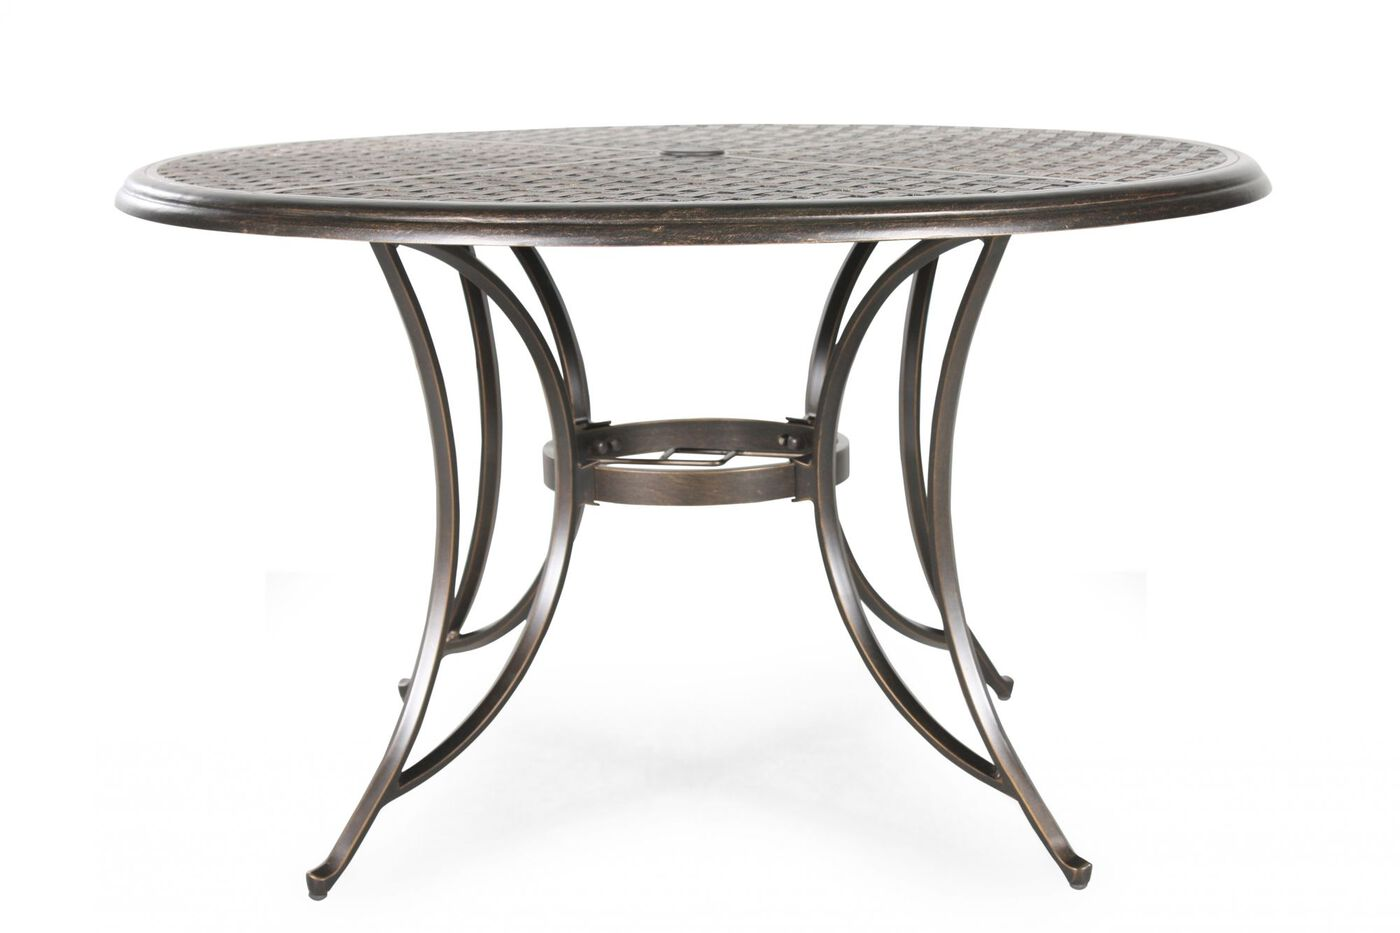 lattice patterned aluminum round patio dining table in dark brown mathis brothers furniture. Black Bedroom Furniture Sets. Home Design Ideas